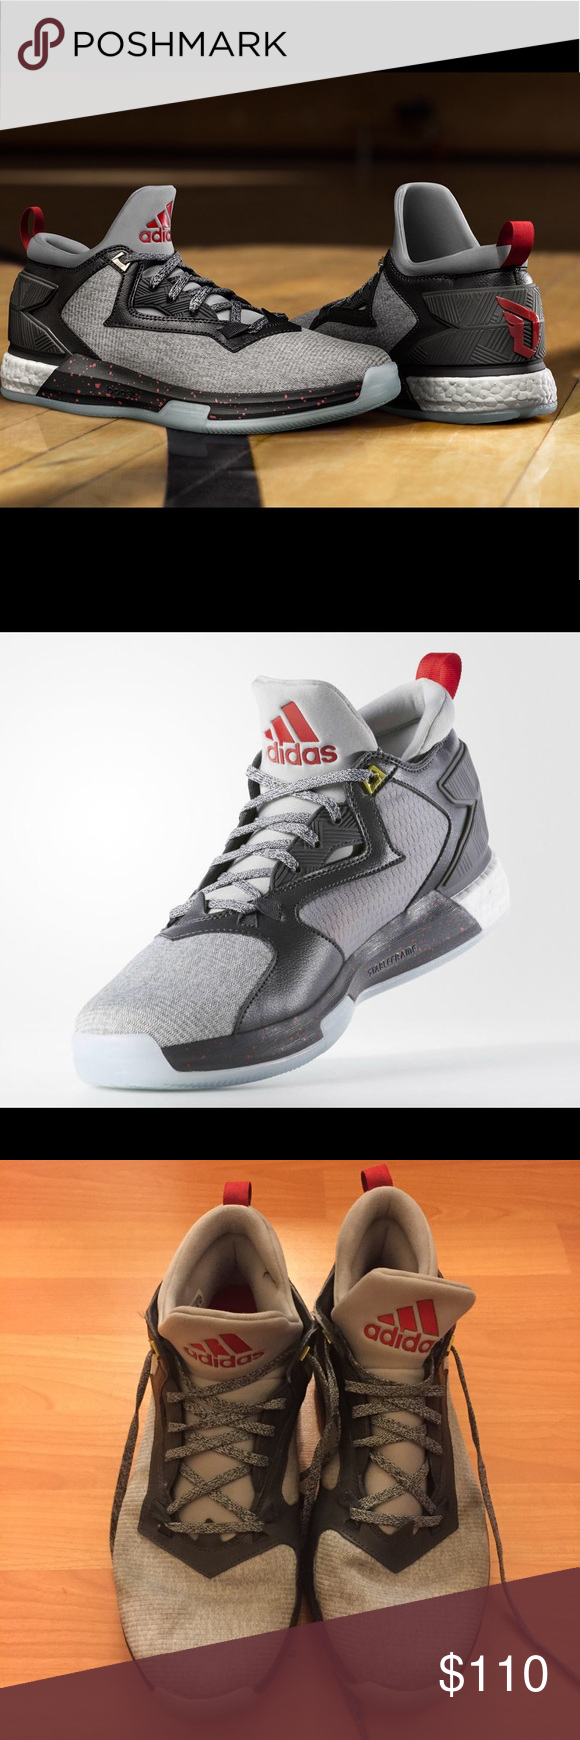 super popular 55186 7a10e Adidas D Lillard 2 Stay Ready Basketball Shoes 11 Excellent barely used basketball  shoes by Adidas. Special Edition. adidas Shoes Athletic Shoes